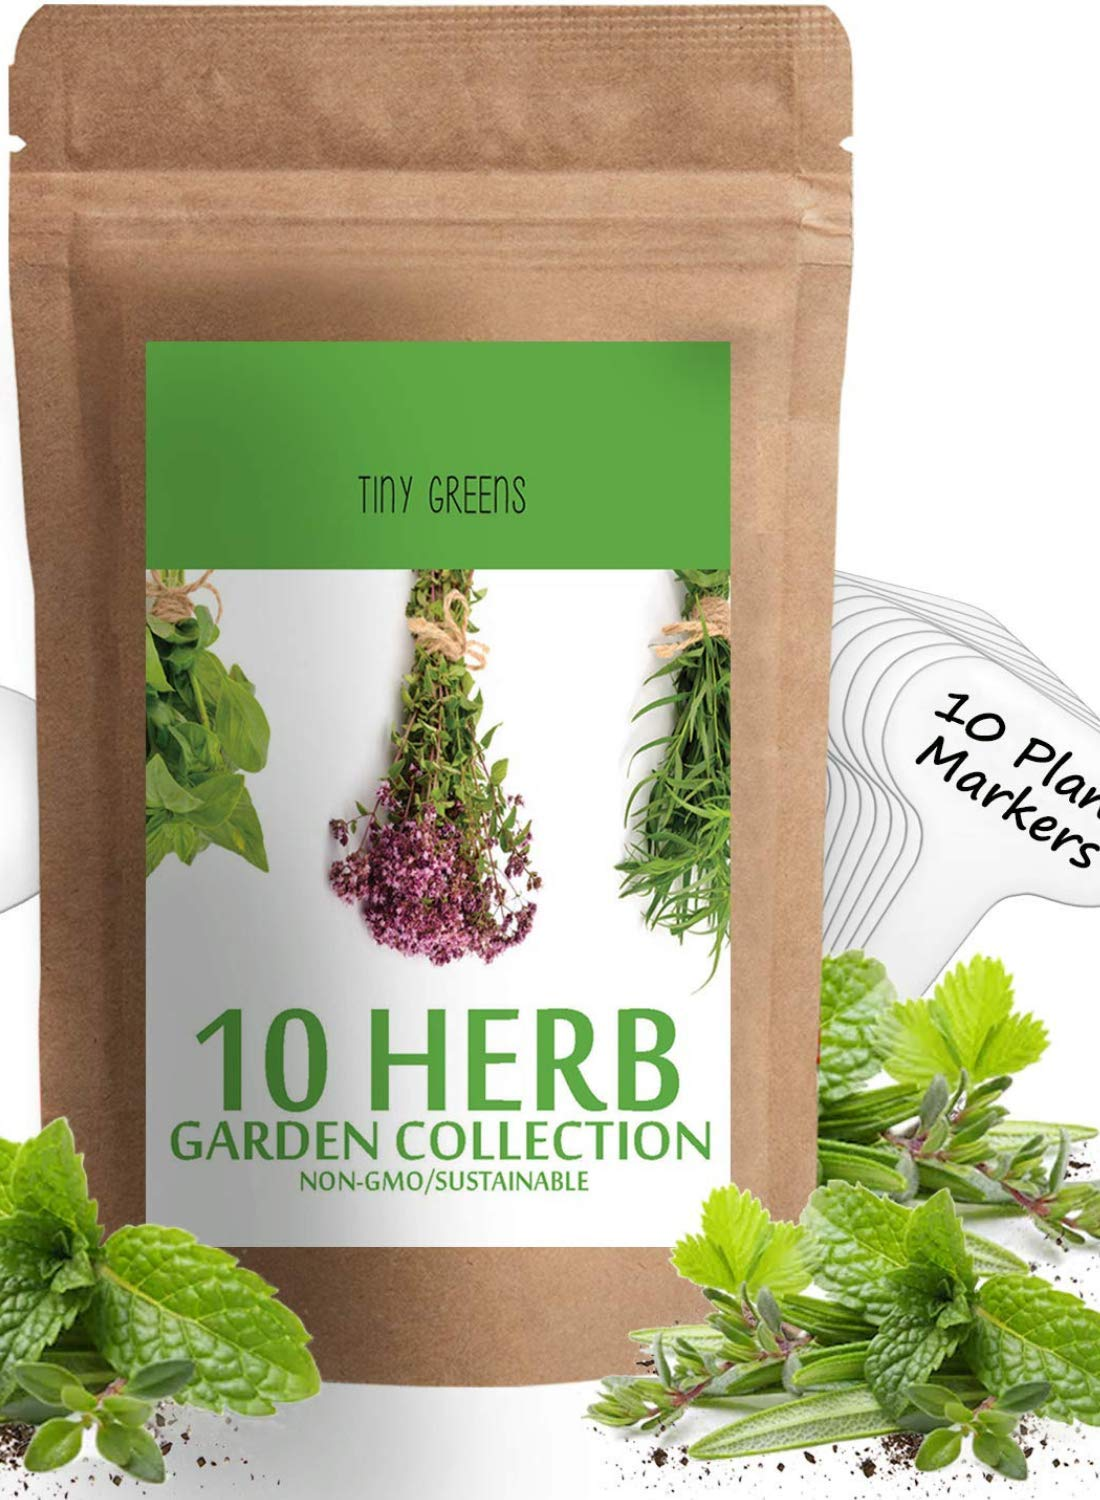 Herb Seeds Vault [10 Variety - 3000 Seeds]- Heirloom Non GMO - Herbs Seeds for Planting for Indoor and Outdoor   Herb Garden Seed Pack   Thyme, Mint, Chives, Dill, Cilantro, Parsley, Basil, Marjoram